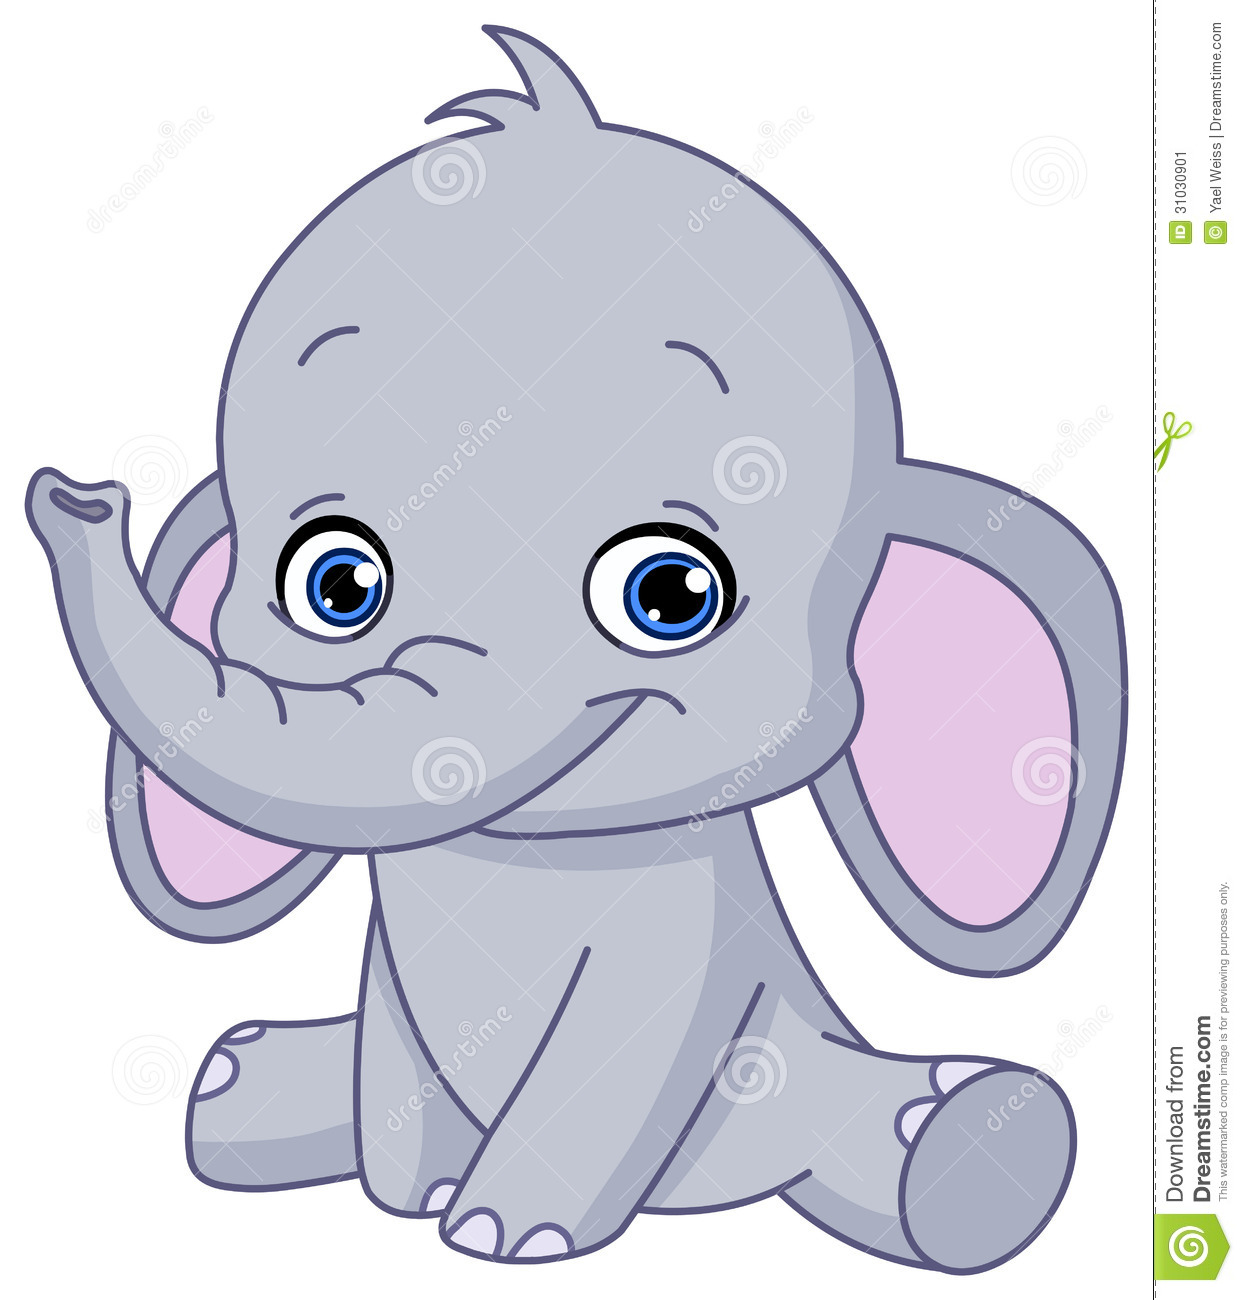 Baby elephant stock vector. Image of friendly, character ...